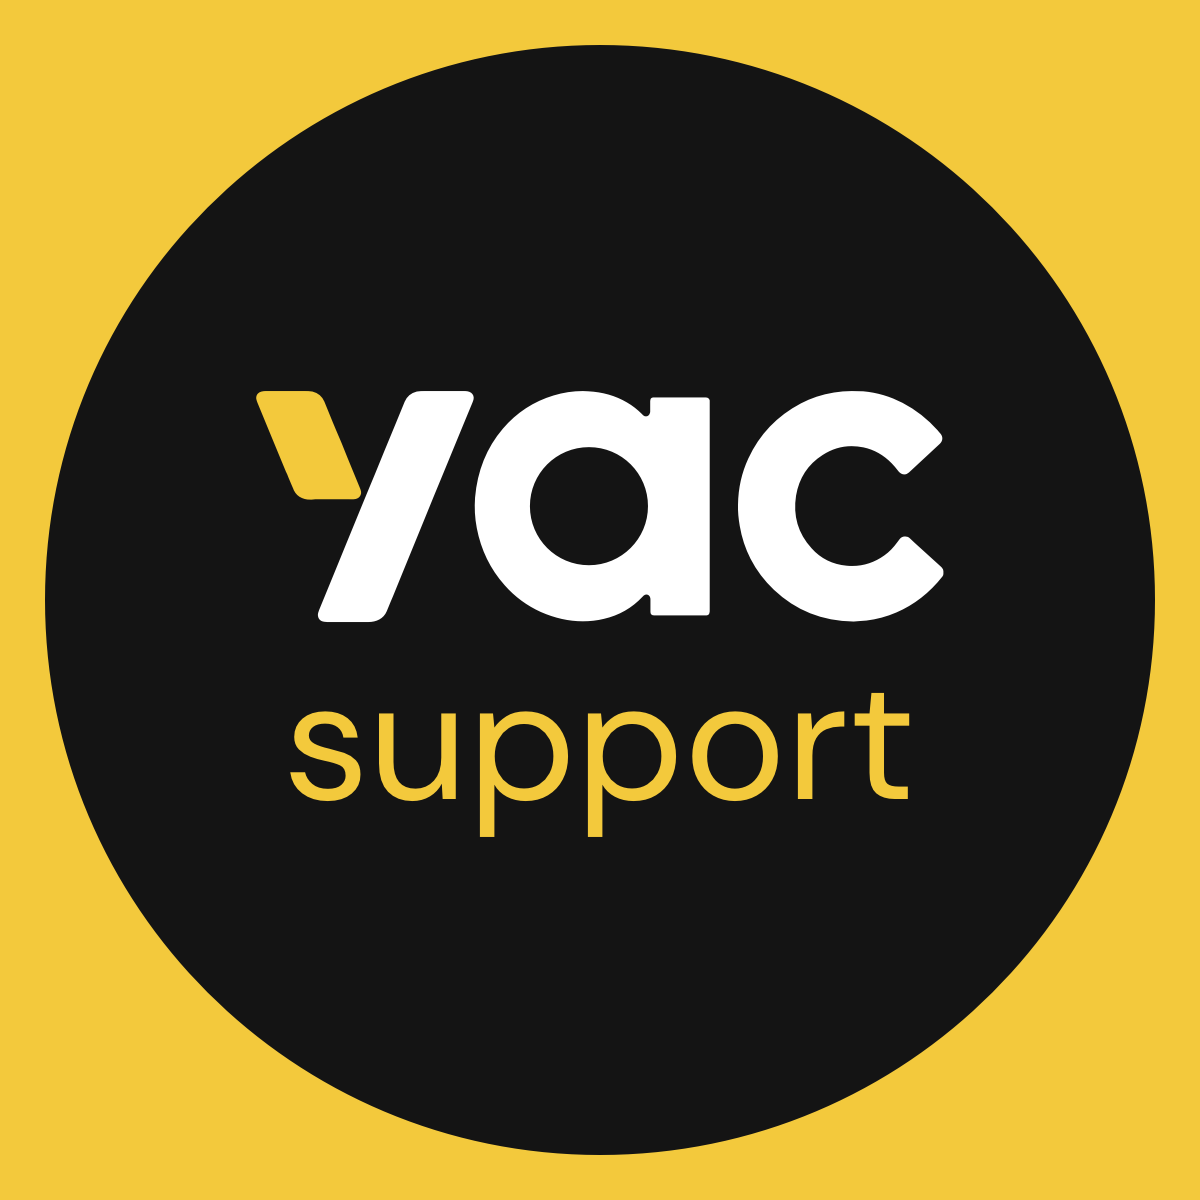 yac support icon